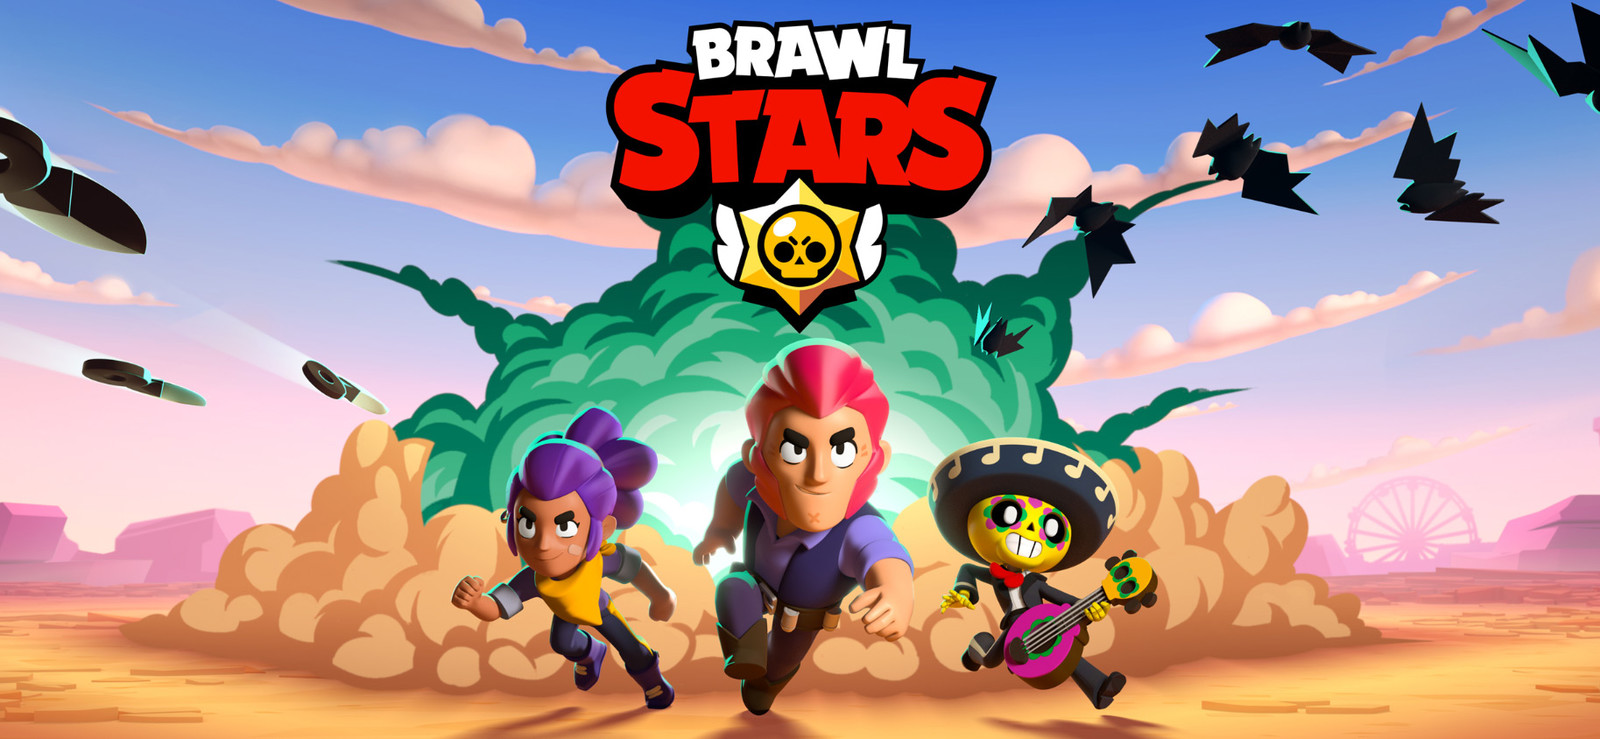 Brawl Stars: Environment Art